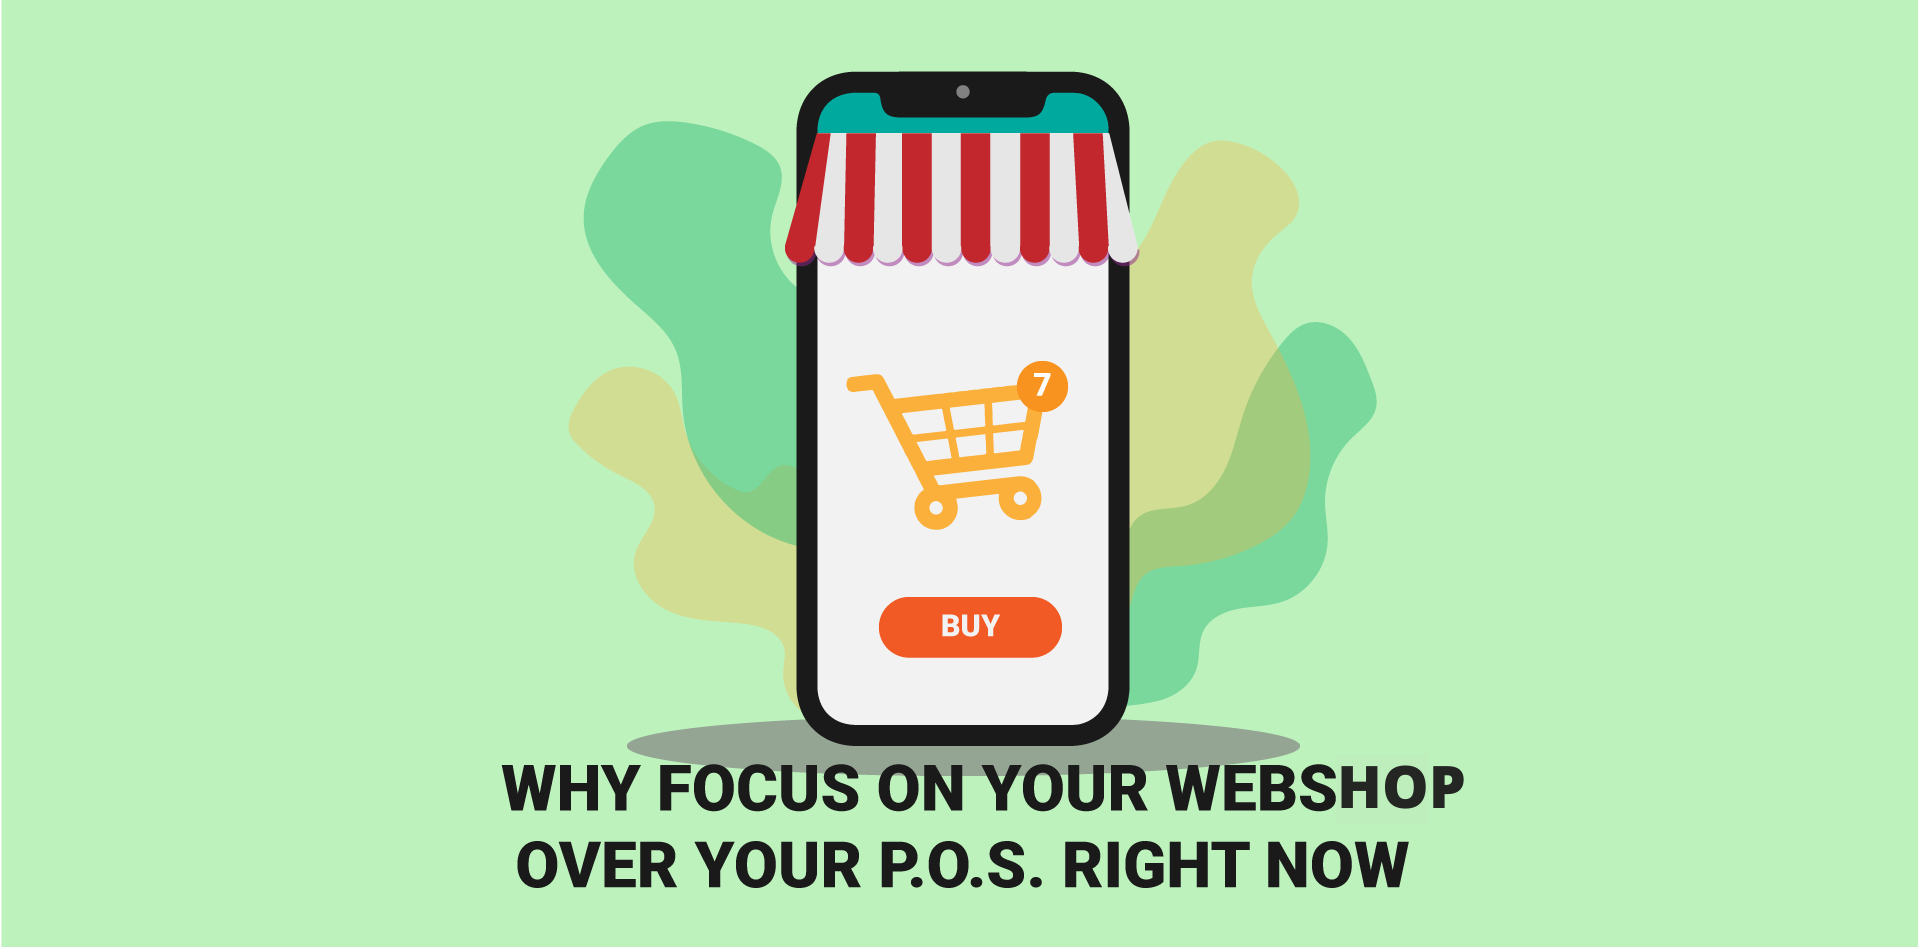 Why focus on your Webshop over your POS right now